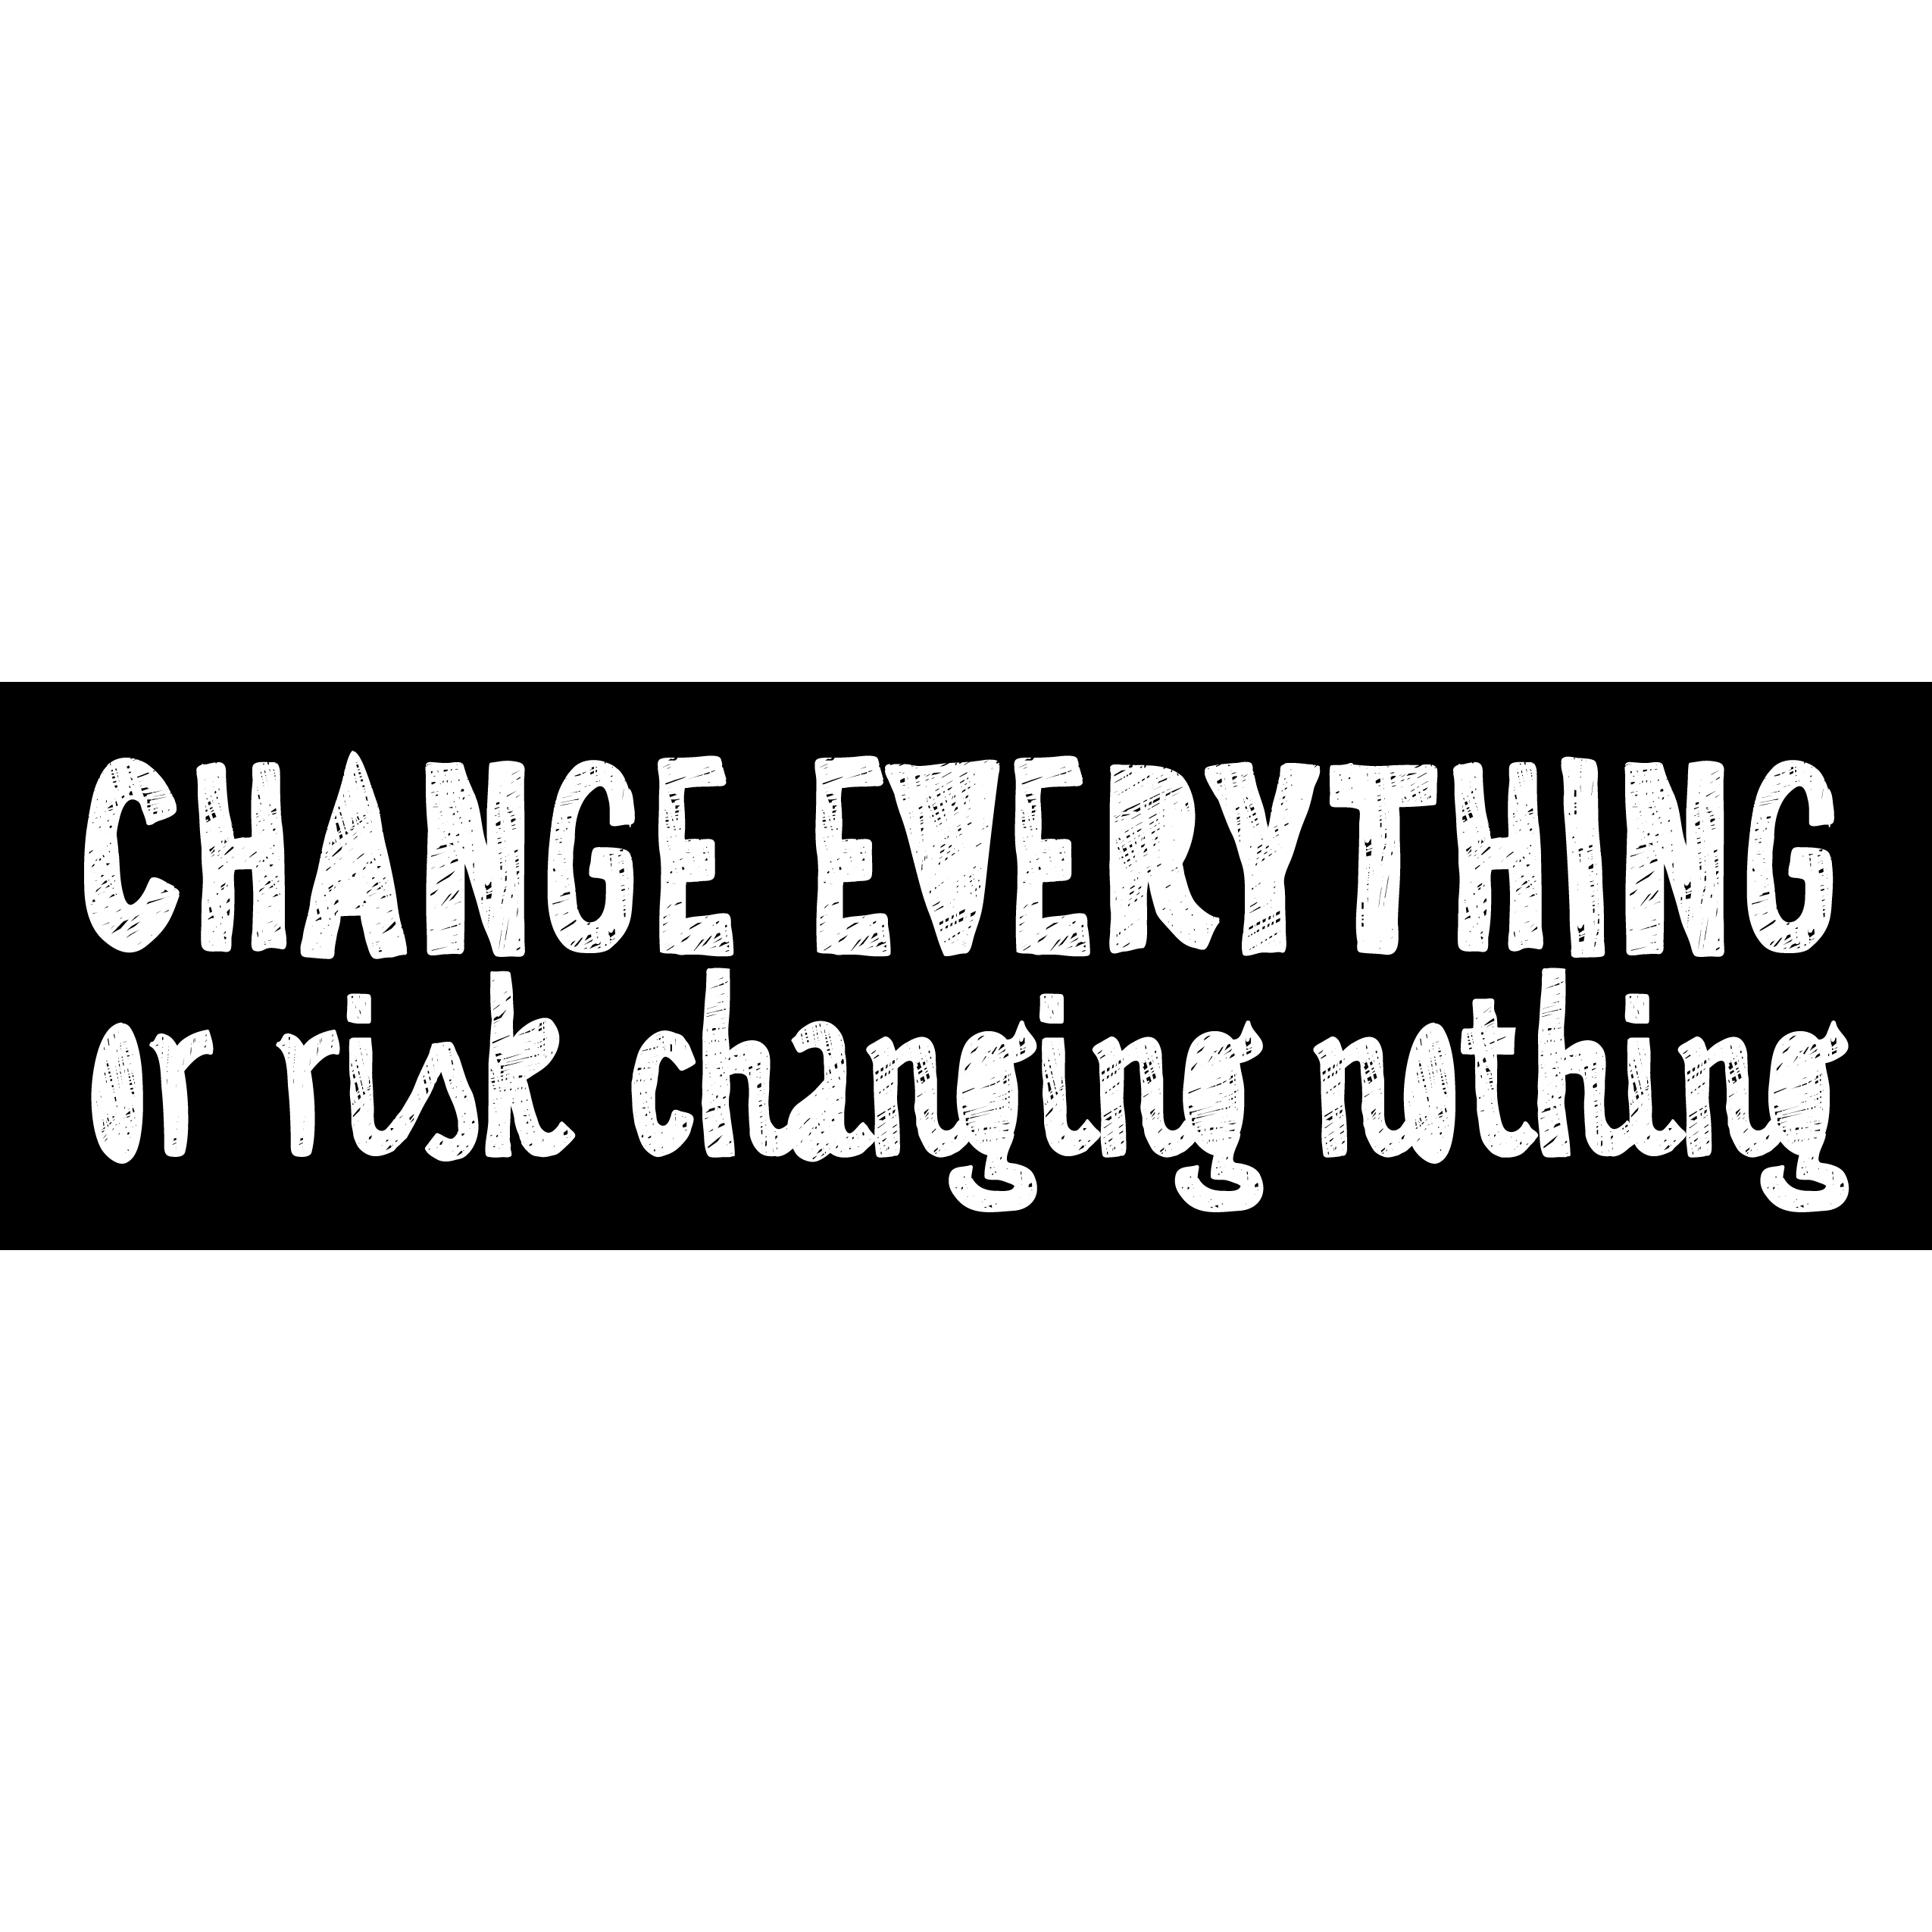 Change Everything or risk changing nothing 00006